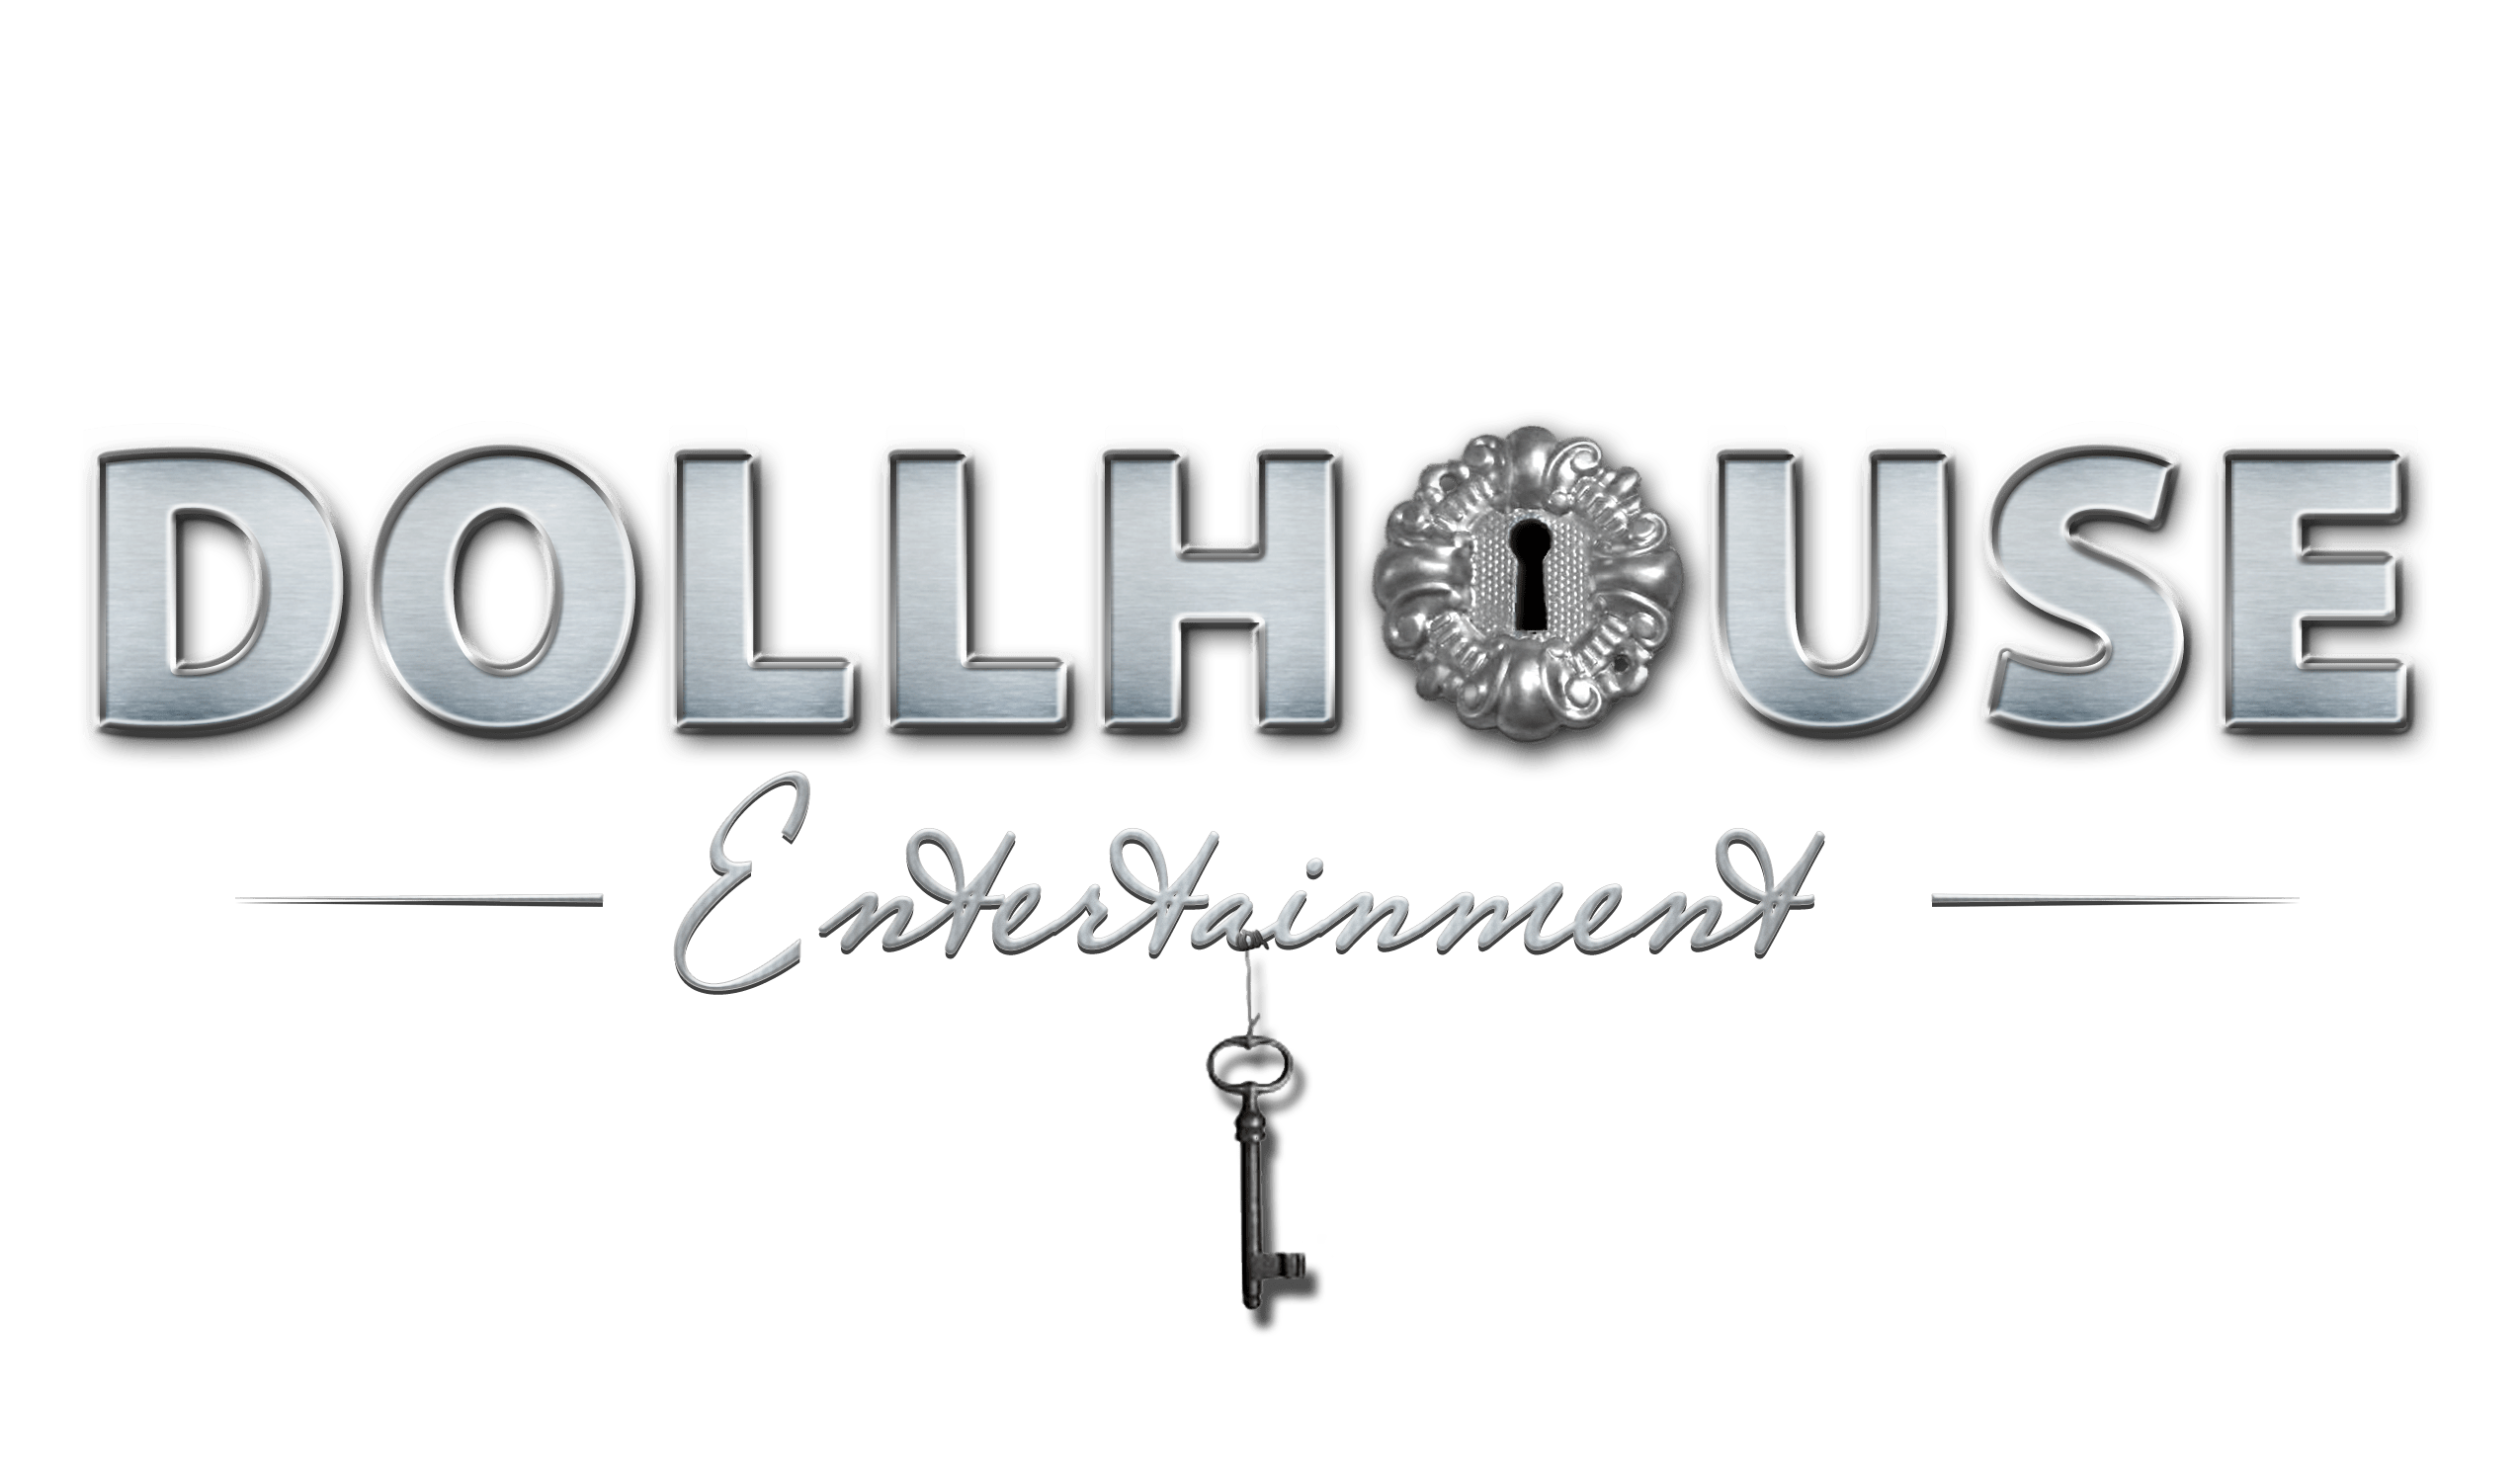 Dollhouse Entertainment